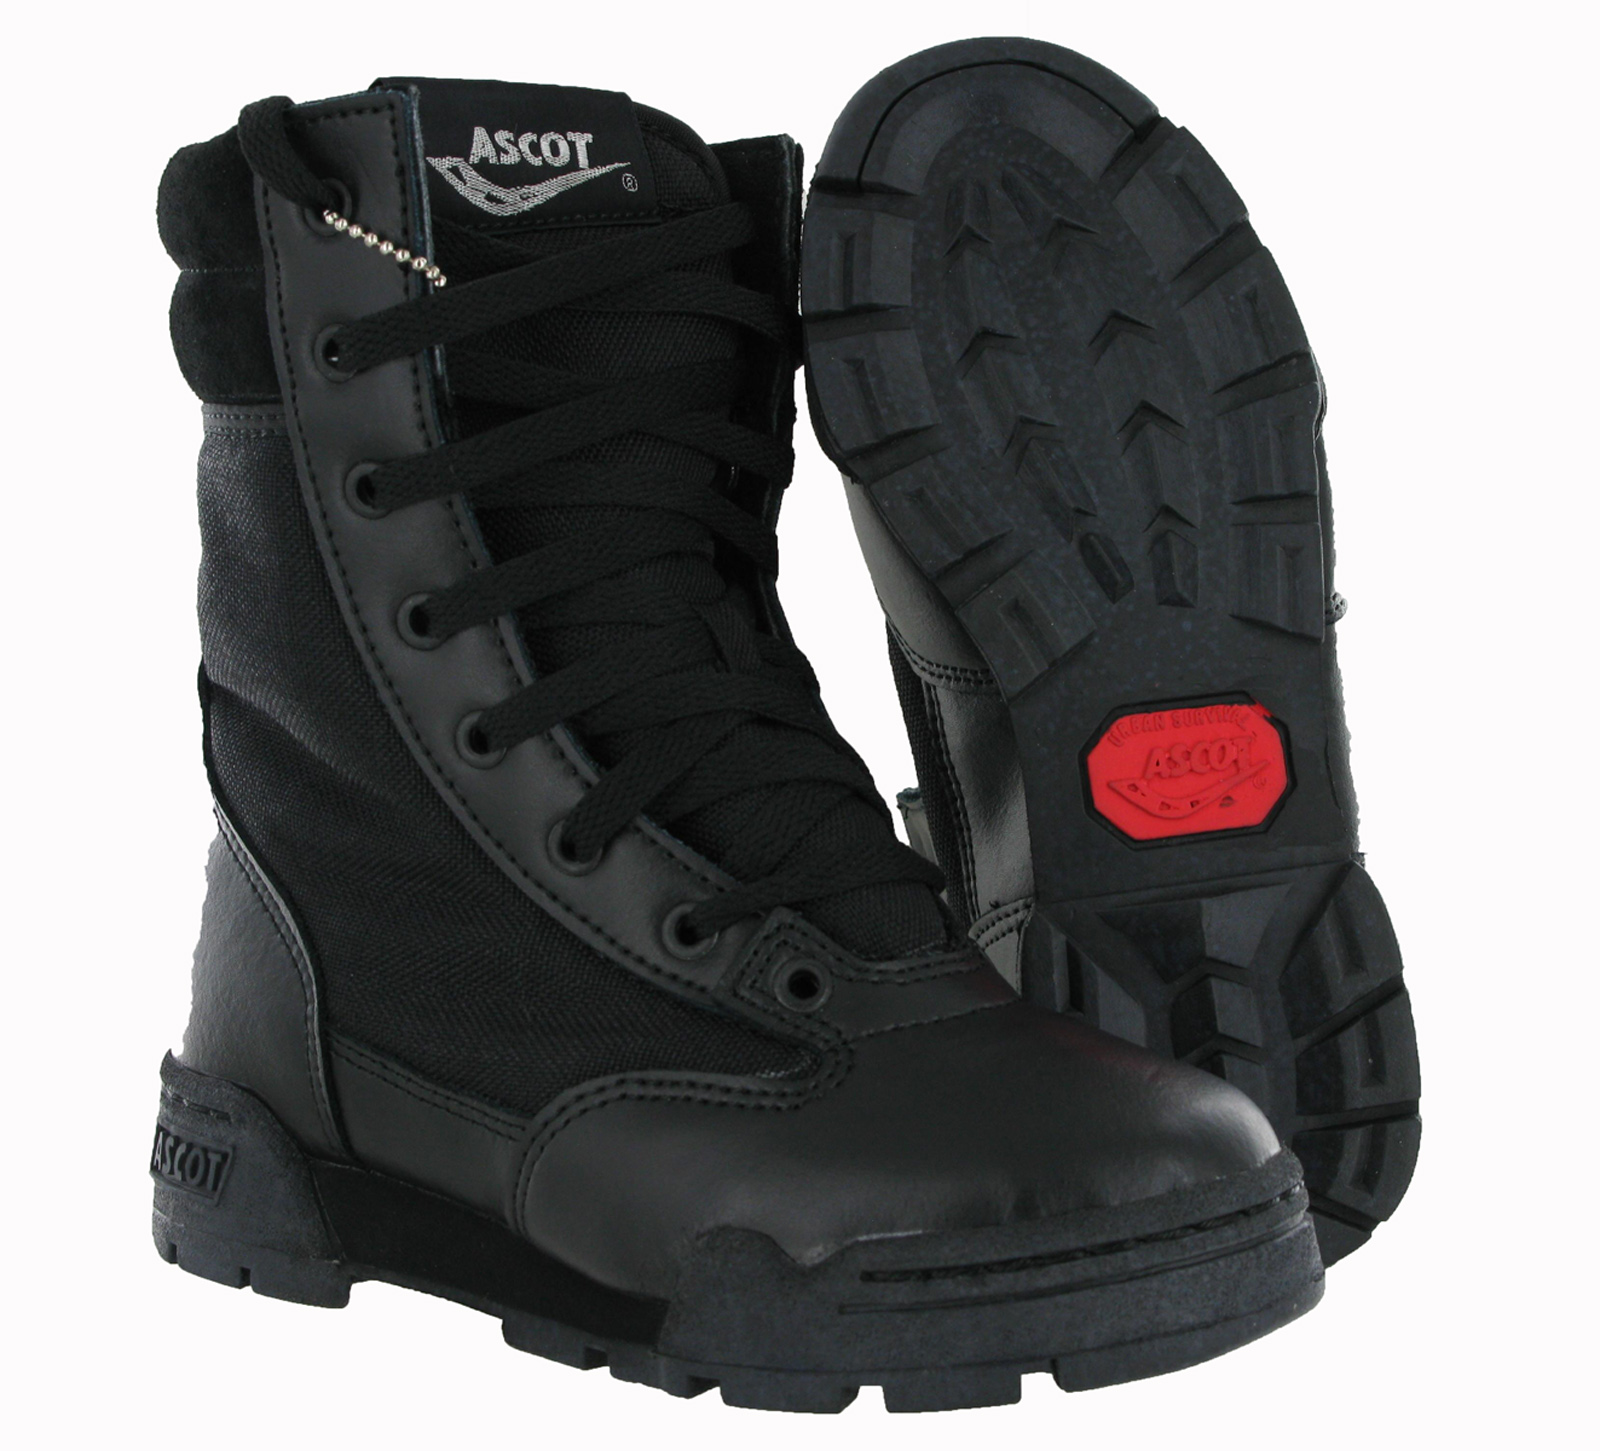 Combat Boots For Boys 0wnkh6bB